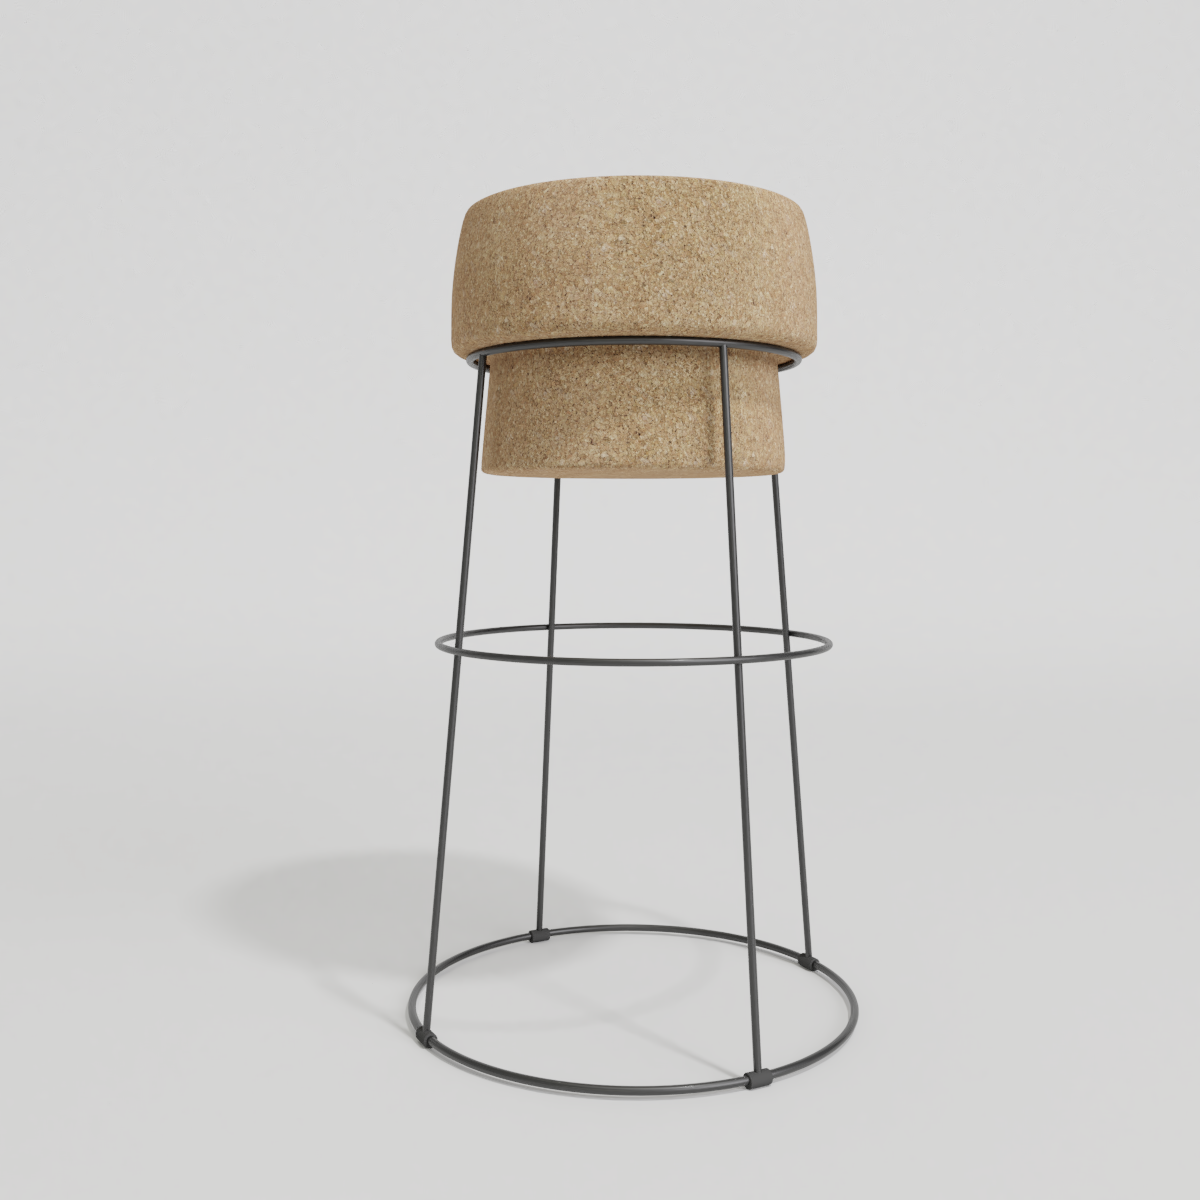 Cork stool preview image 1